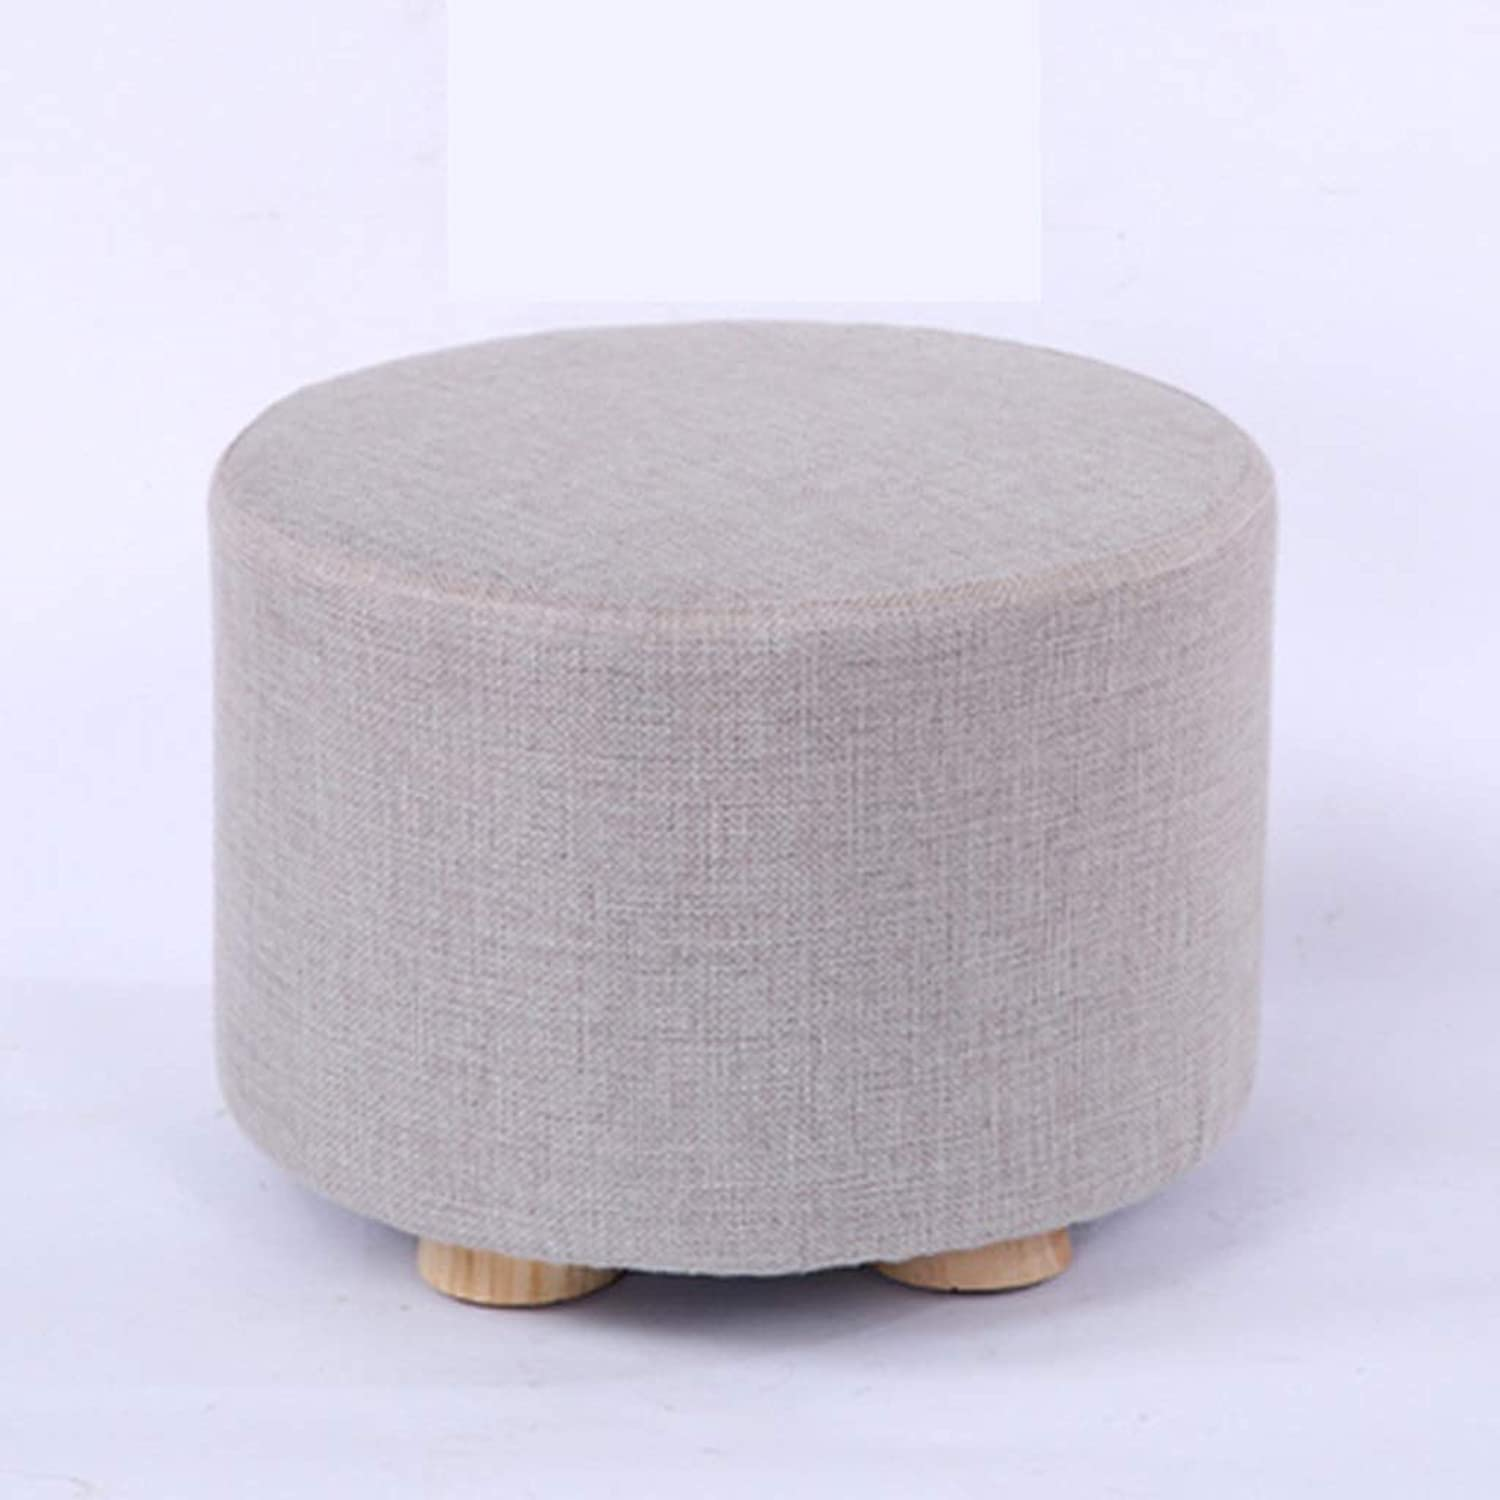 RHHWJJXB Cloth Stool Home Creative Stool Seat Small Bench Fashion Sofa Stool Solid Wood Stool Stool Coffee Table Without Legs (color   C)